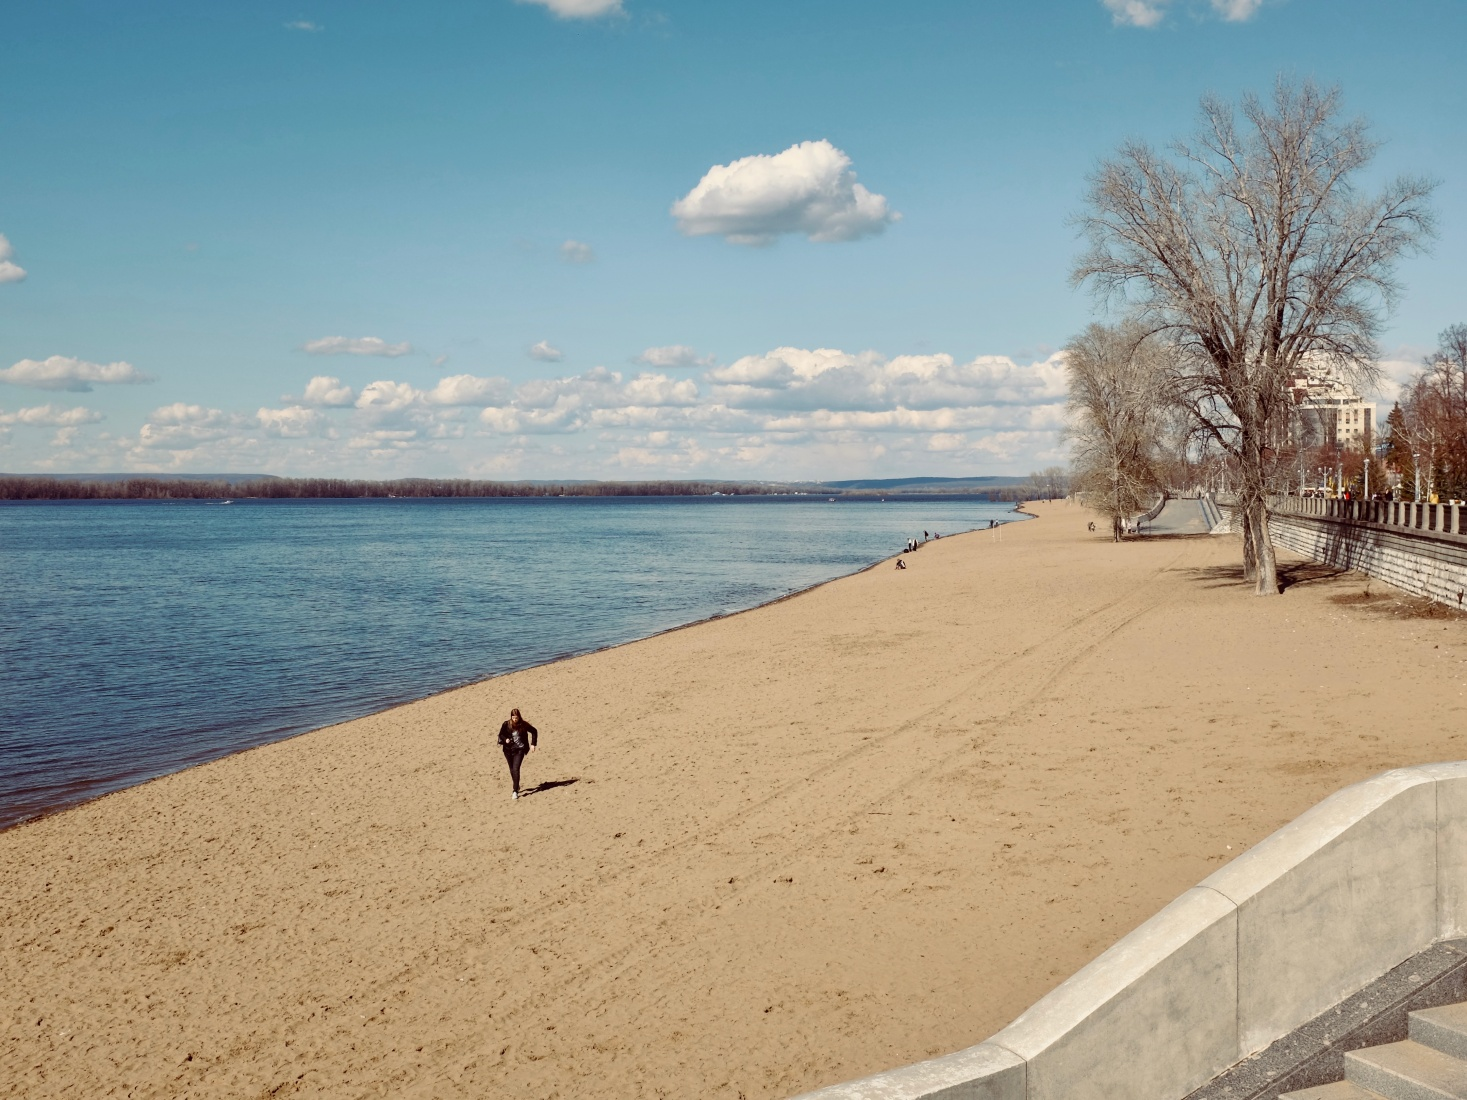 The beach along the Volga River, in Samara, Russia.